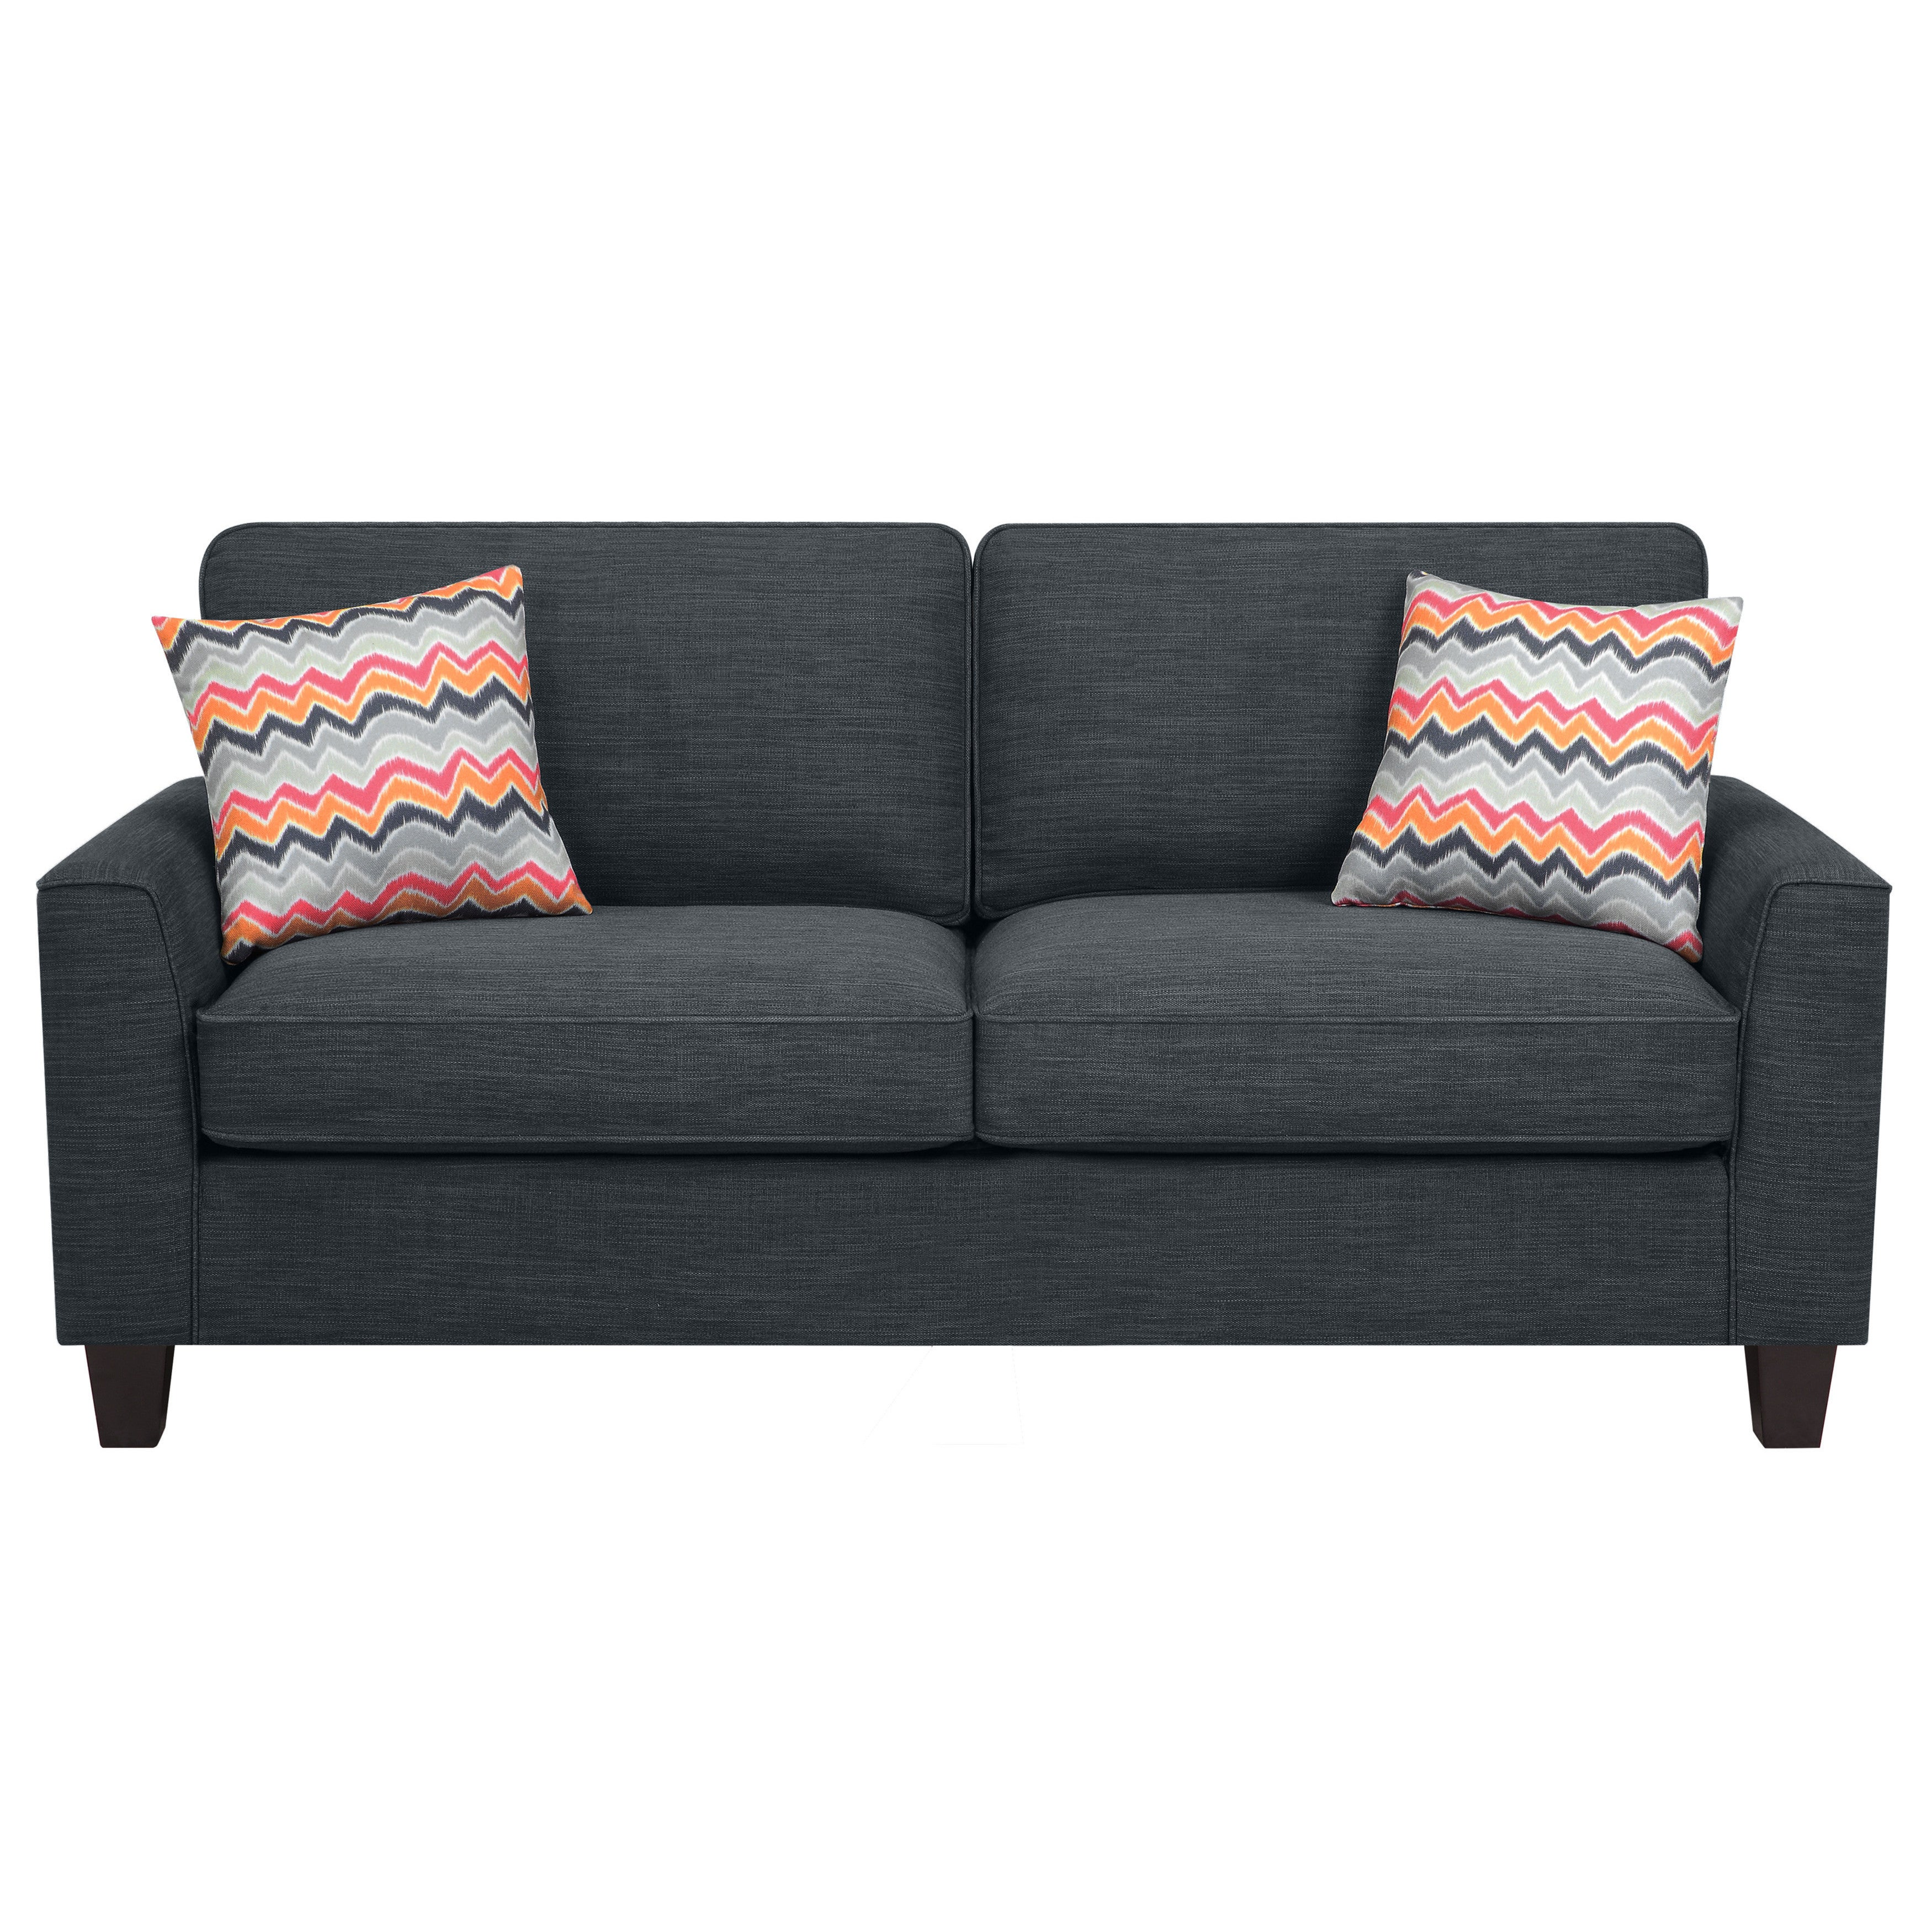 sofa seat sunday bl couch deep frontlow seated couches inch extra submit dot blu